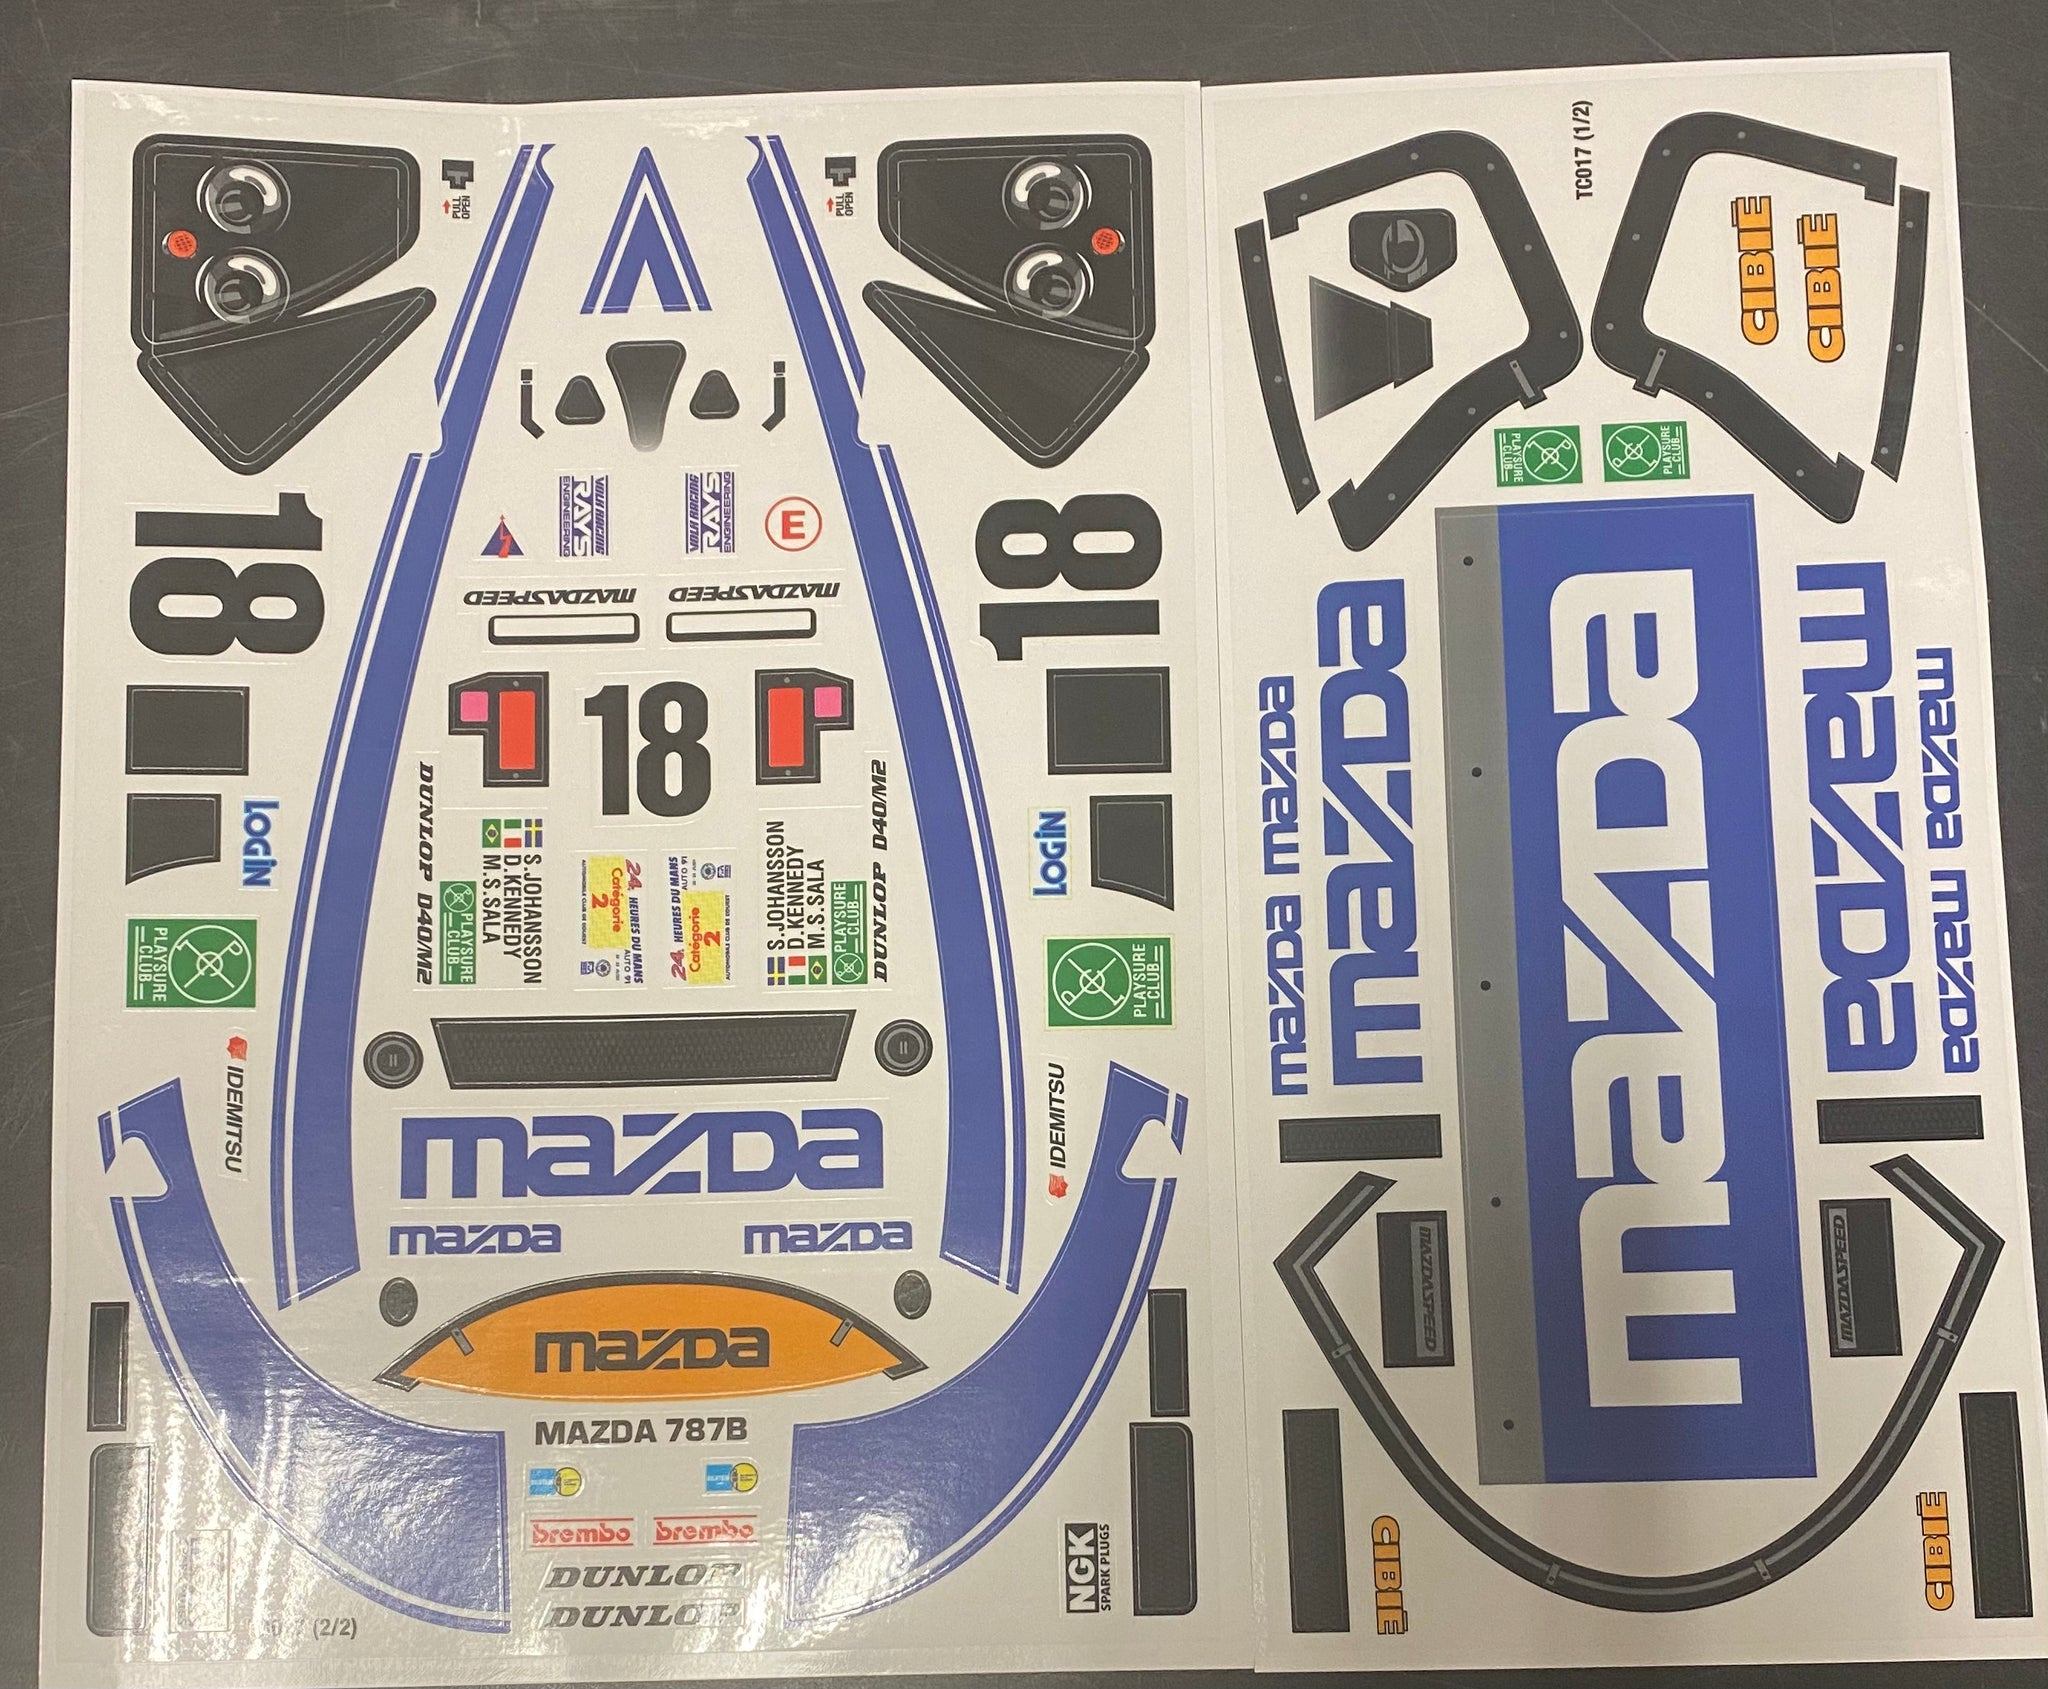 Tc017 decals kit for Mazda group c